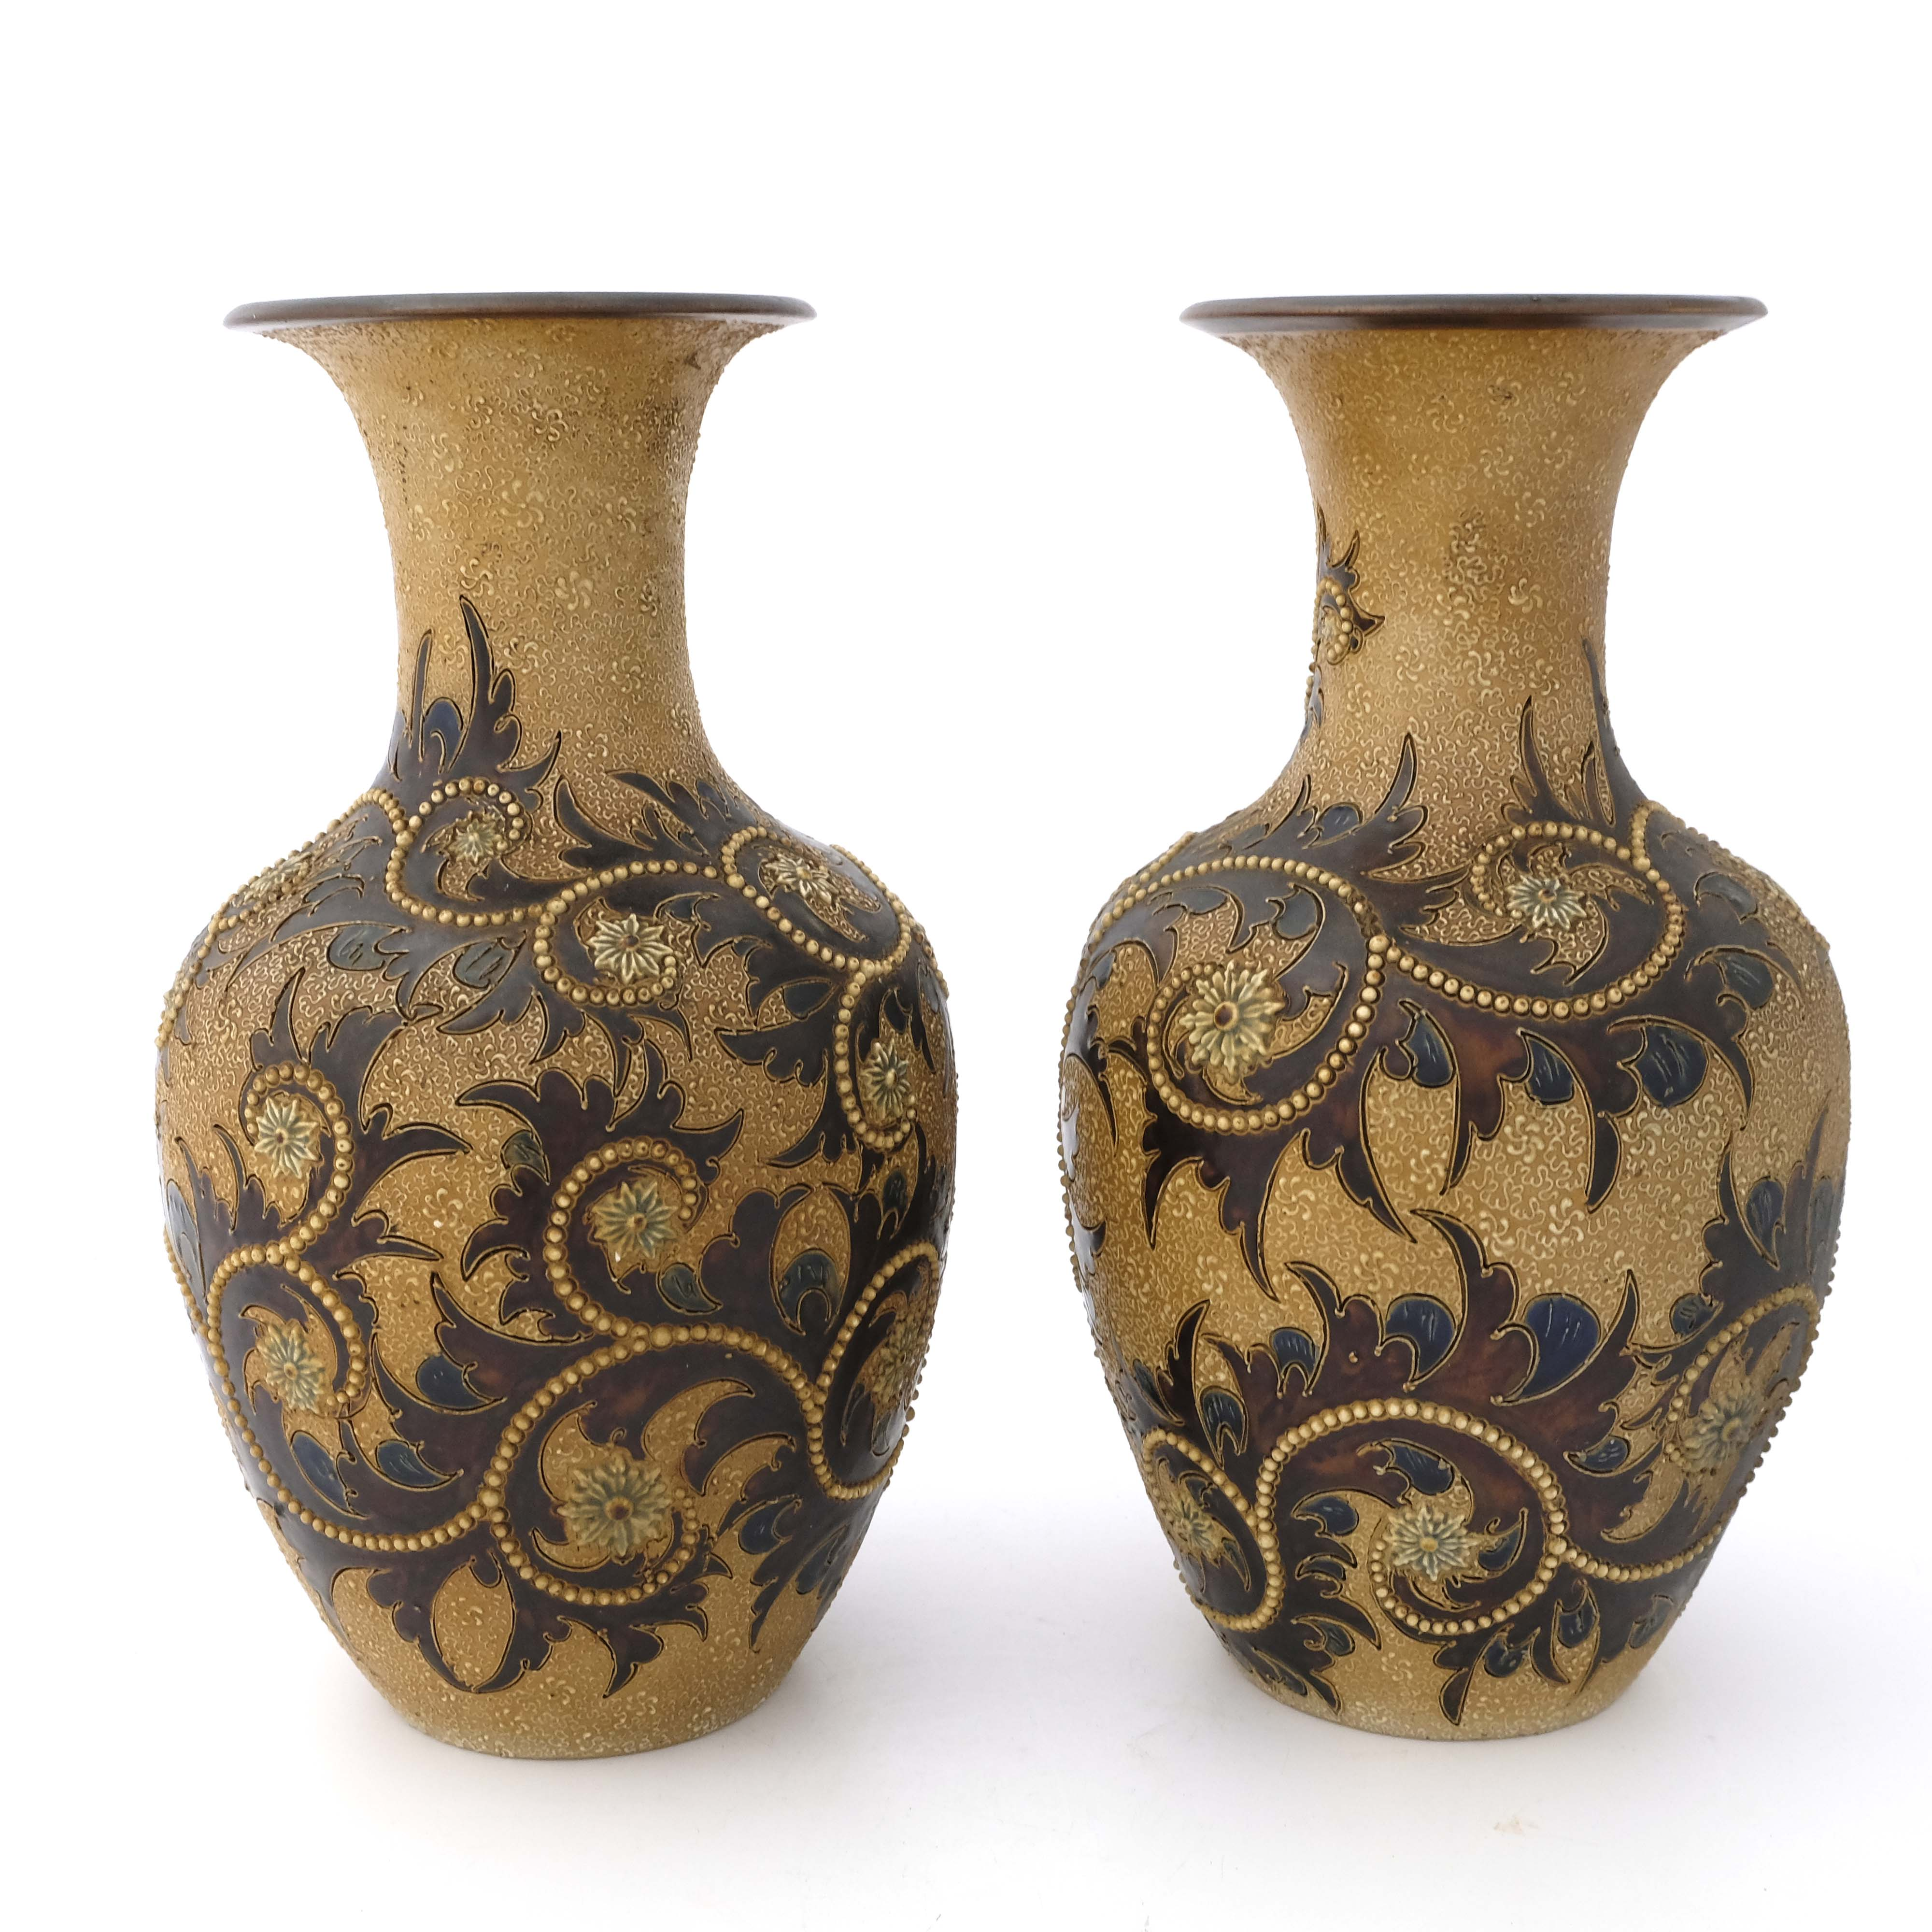 George Tinworth for Doulton Lambeth, a pair of sto - Image 2 of 7